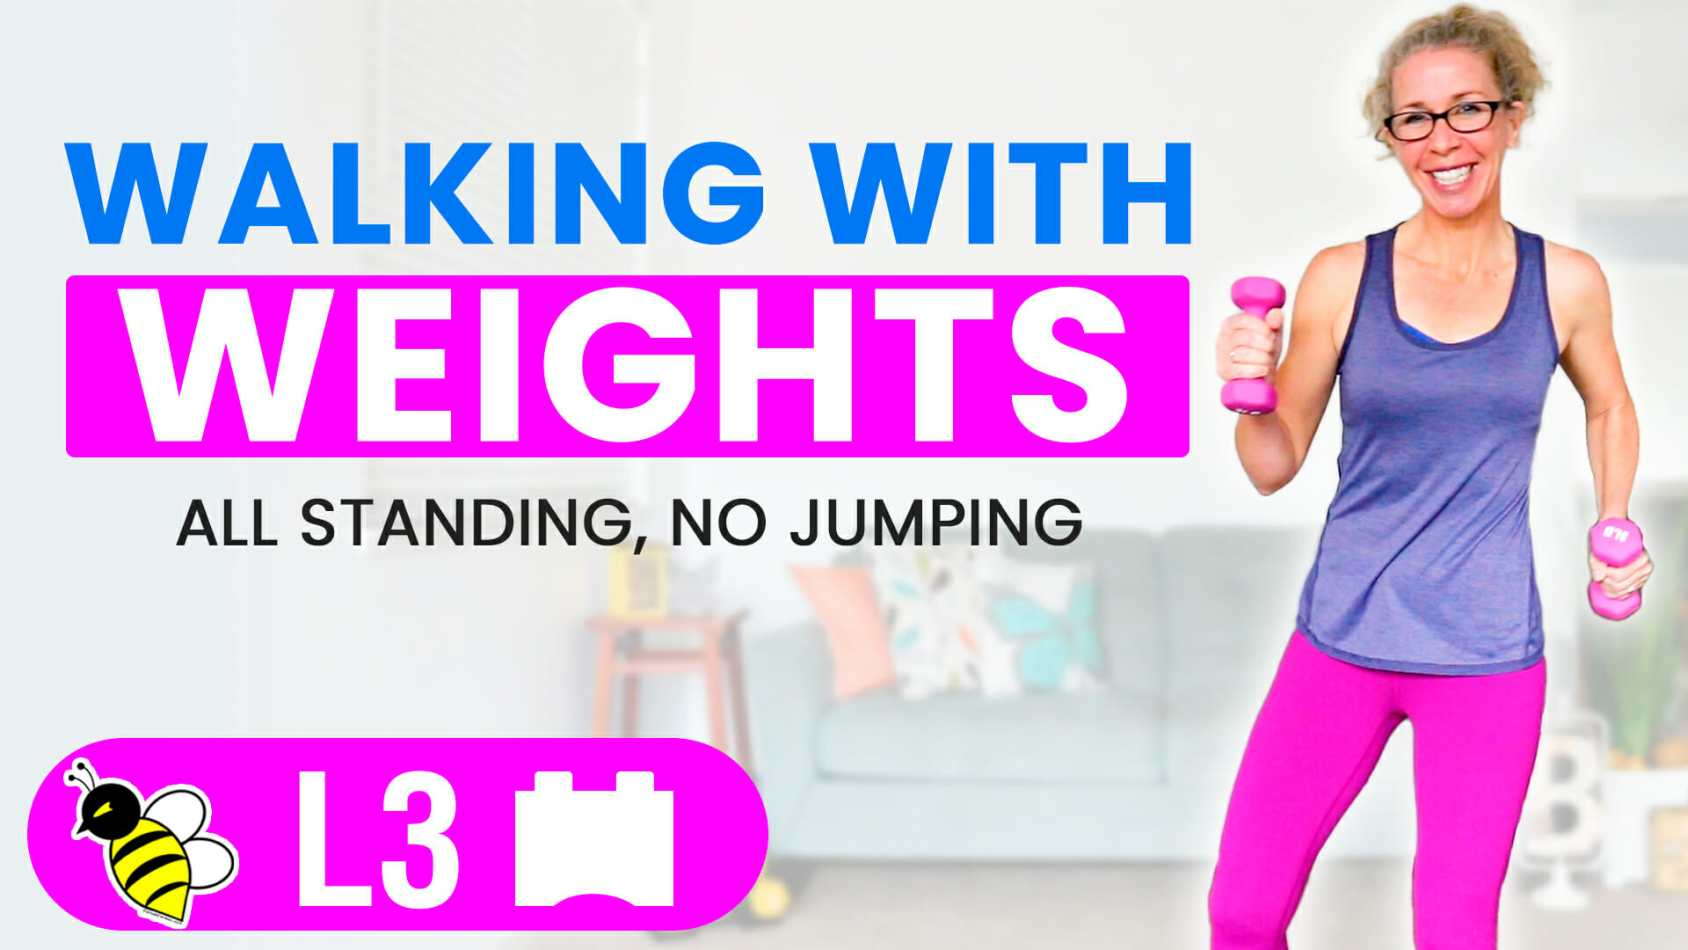 Low Impact WALKING with WEIGHTS 10 minute stackable CARDIO TONING workout with light dumbbells